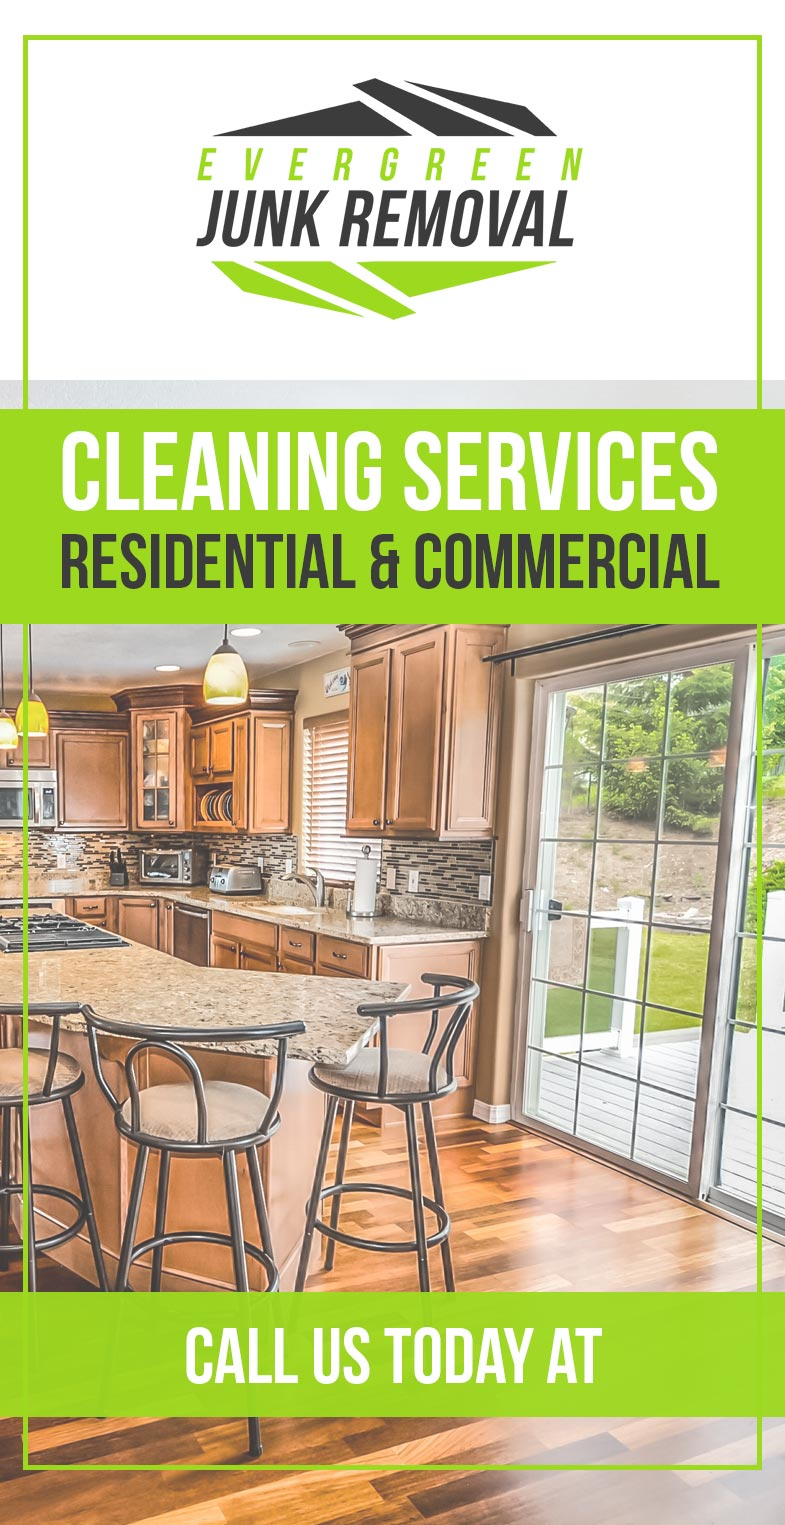 Hallandale Beach Maid Services